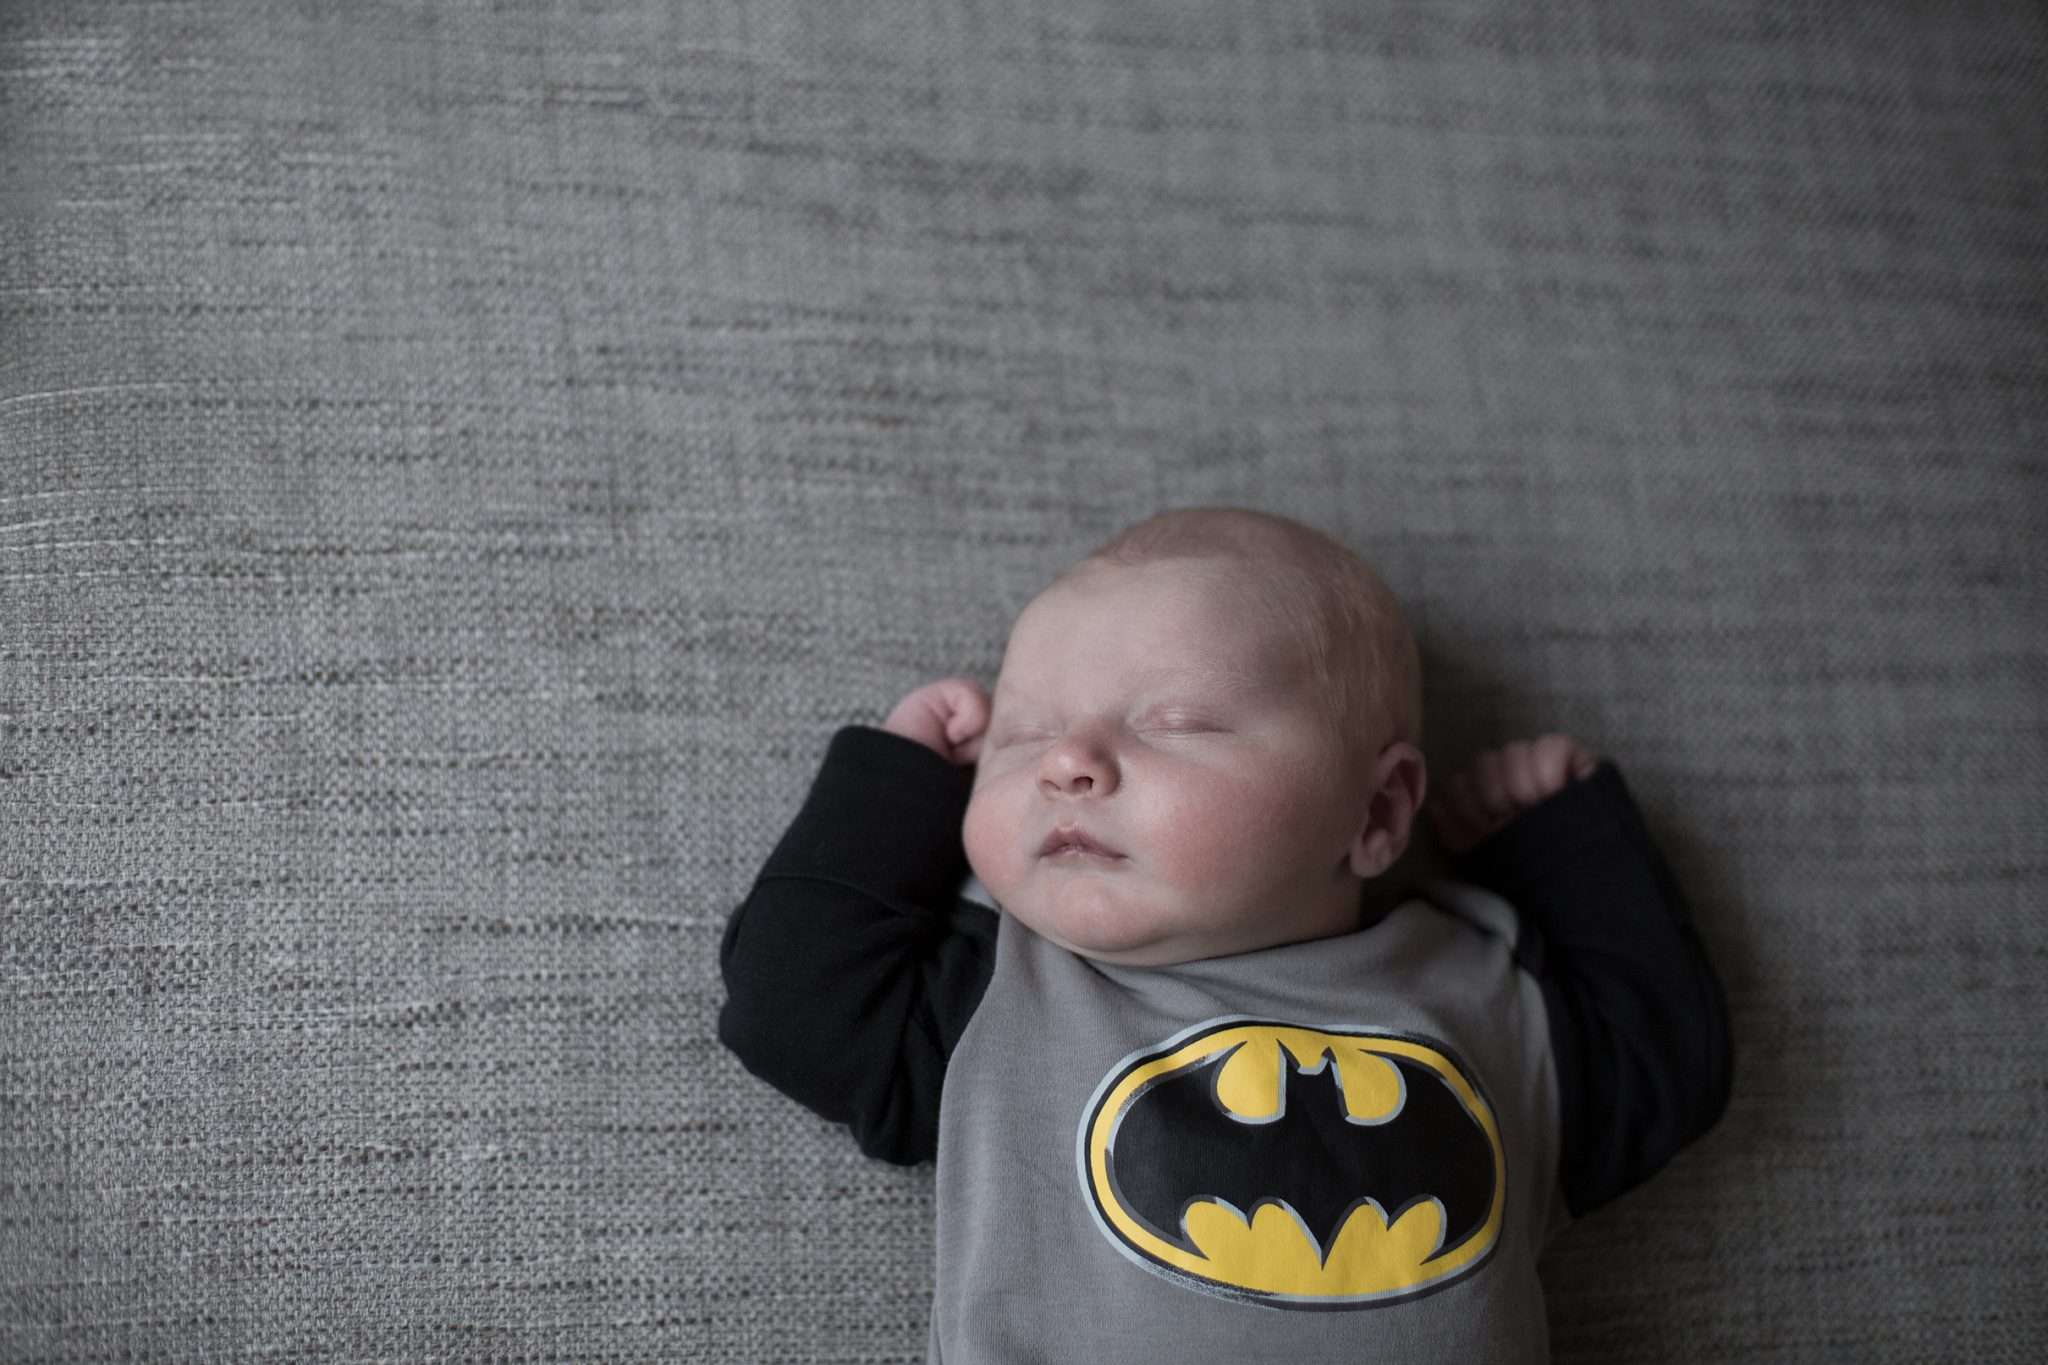 A photo of a newborn baby wearing a batman costume